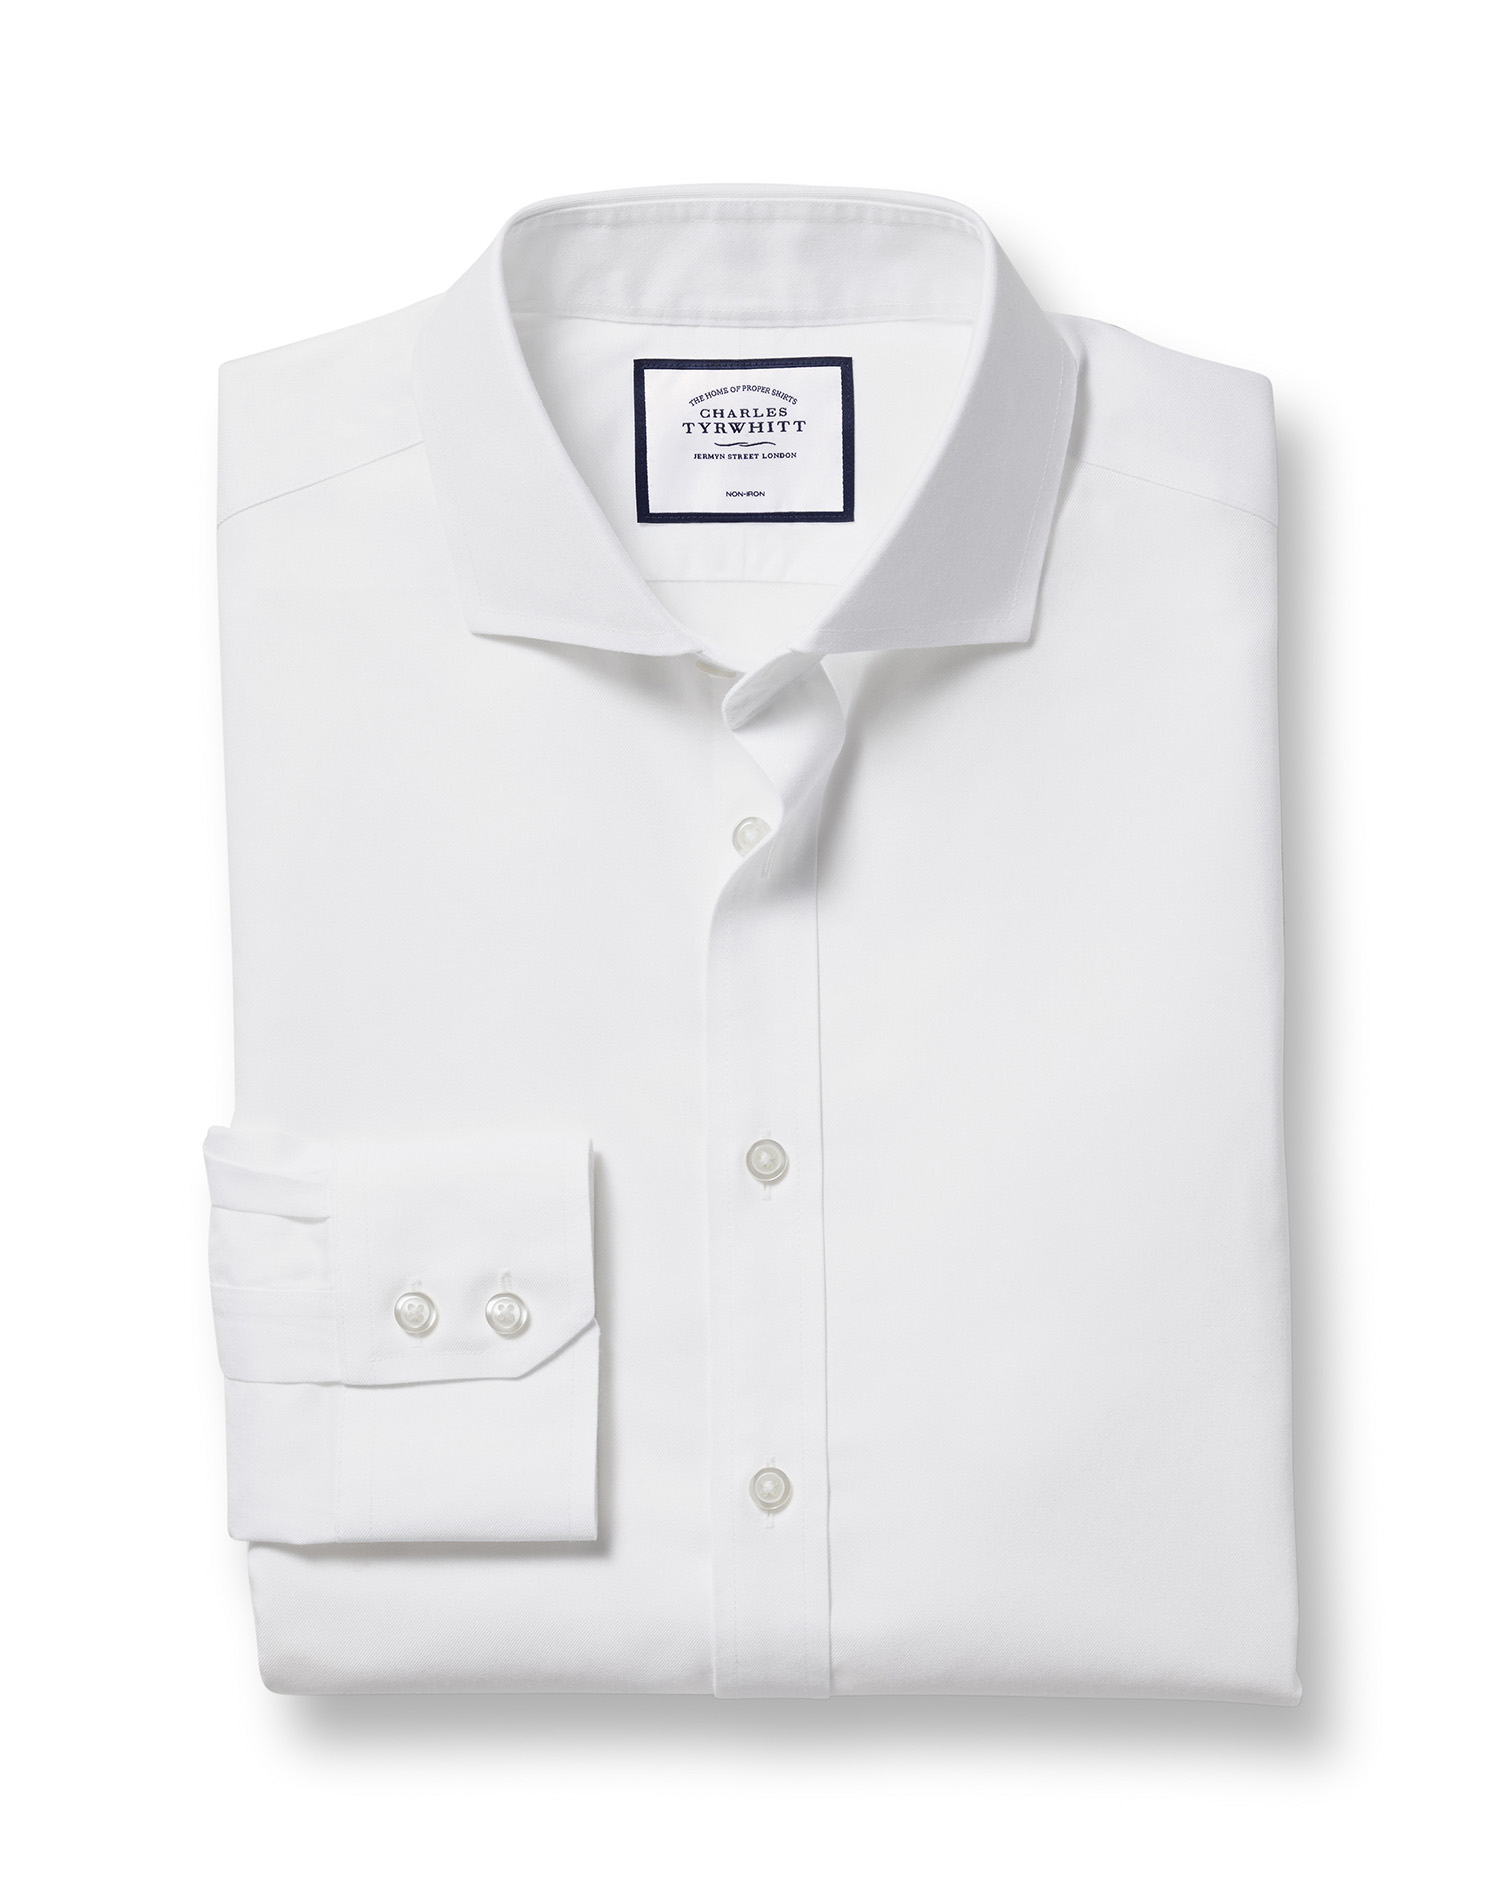 Slim Fit Extreme Cutaway Non-Iron Twill White Cotton Formal Shirt Double Cuff Size 16/34 by Charles